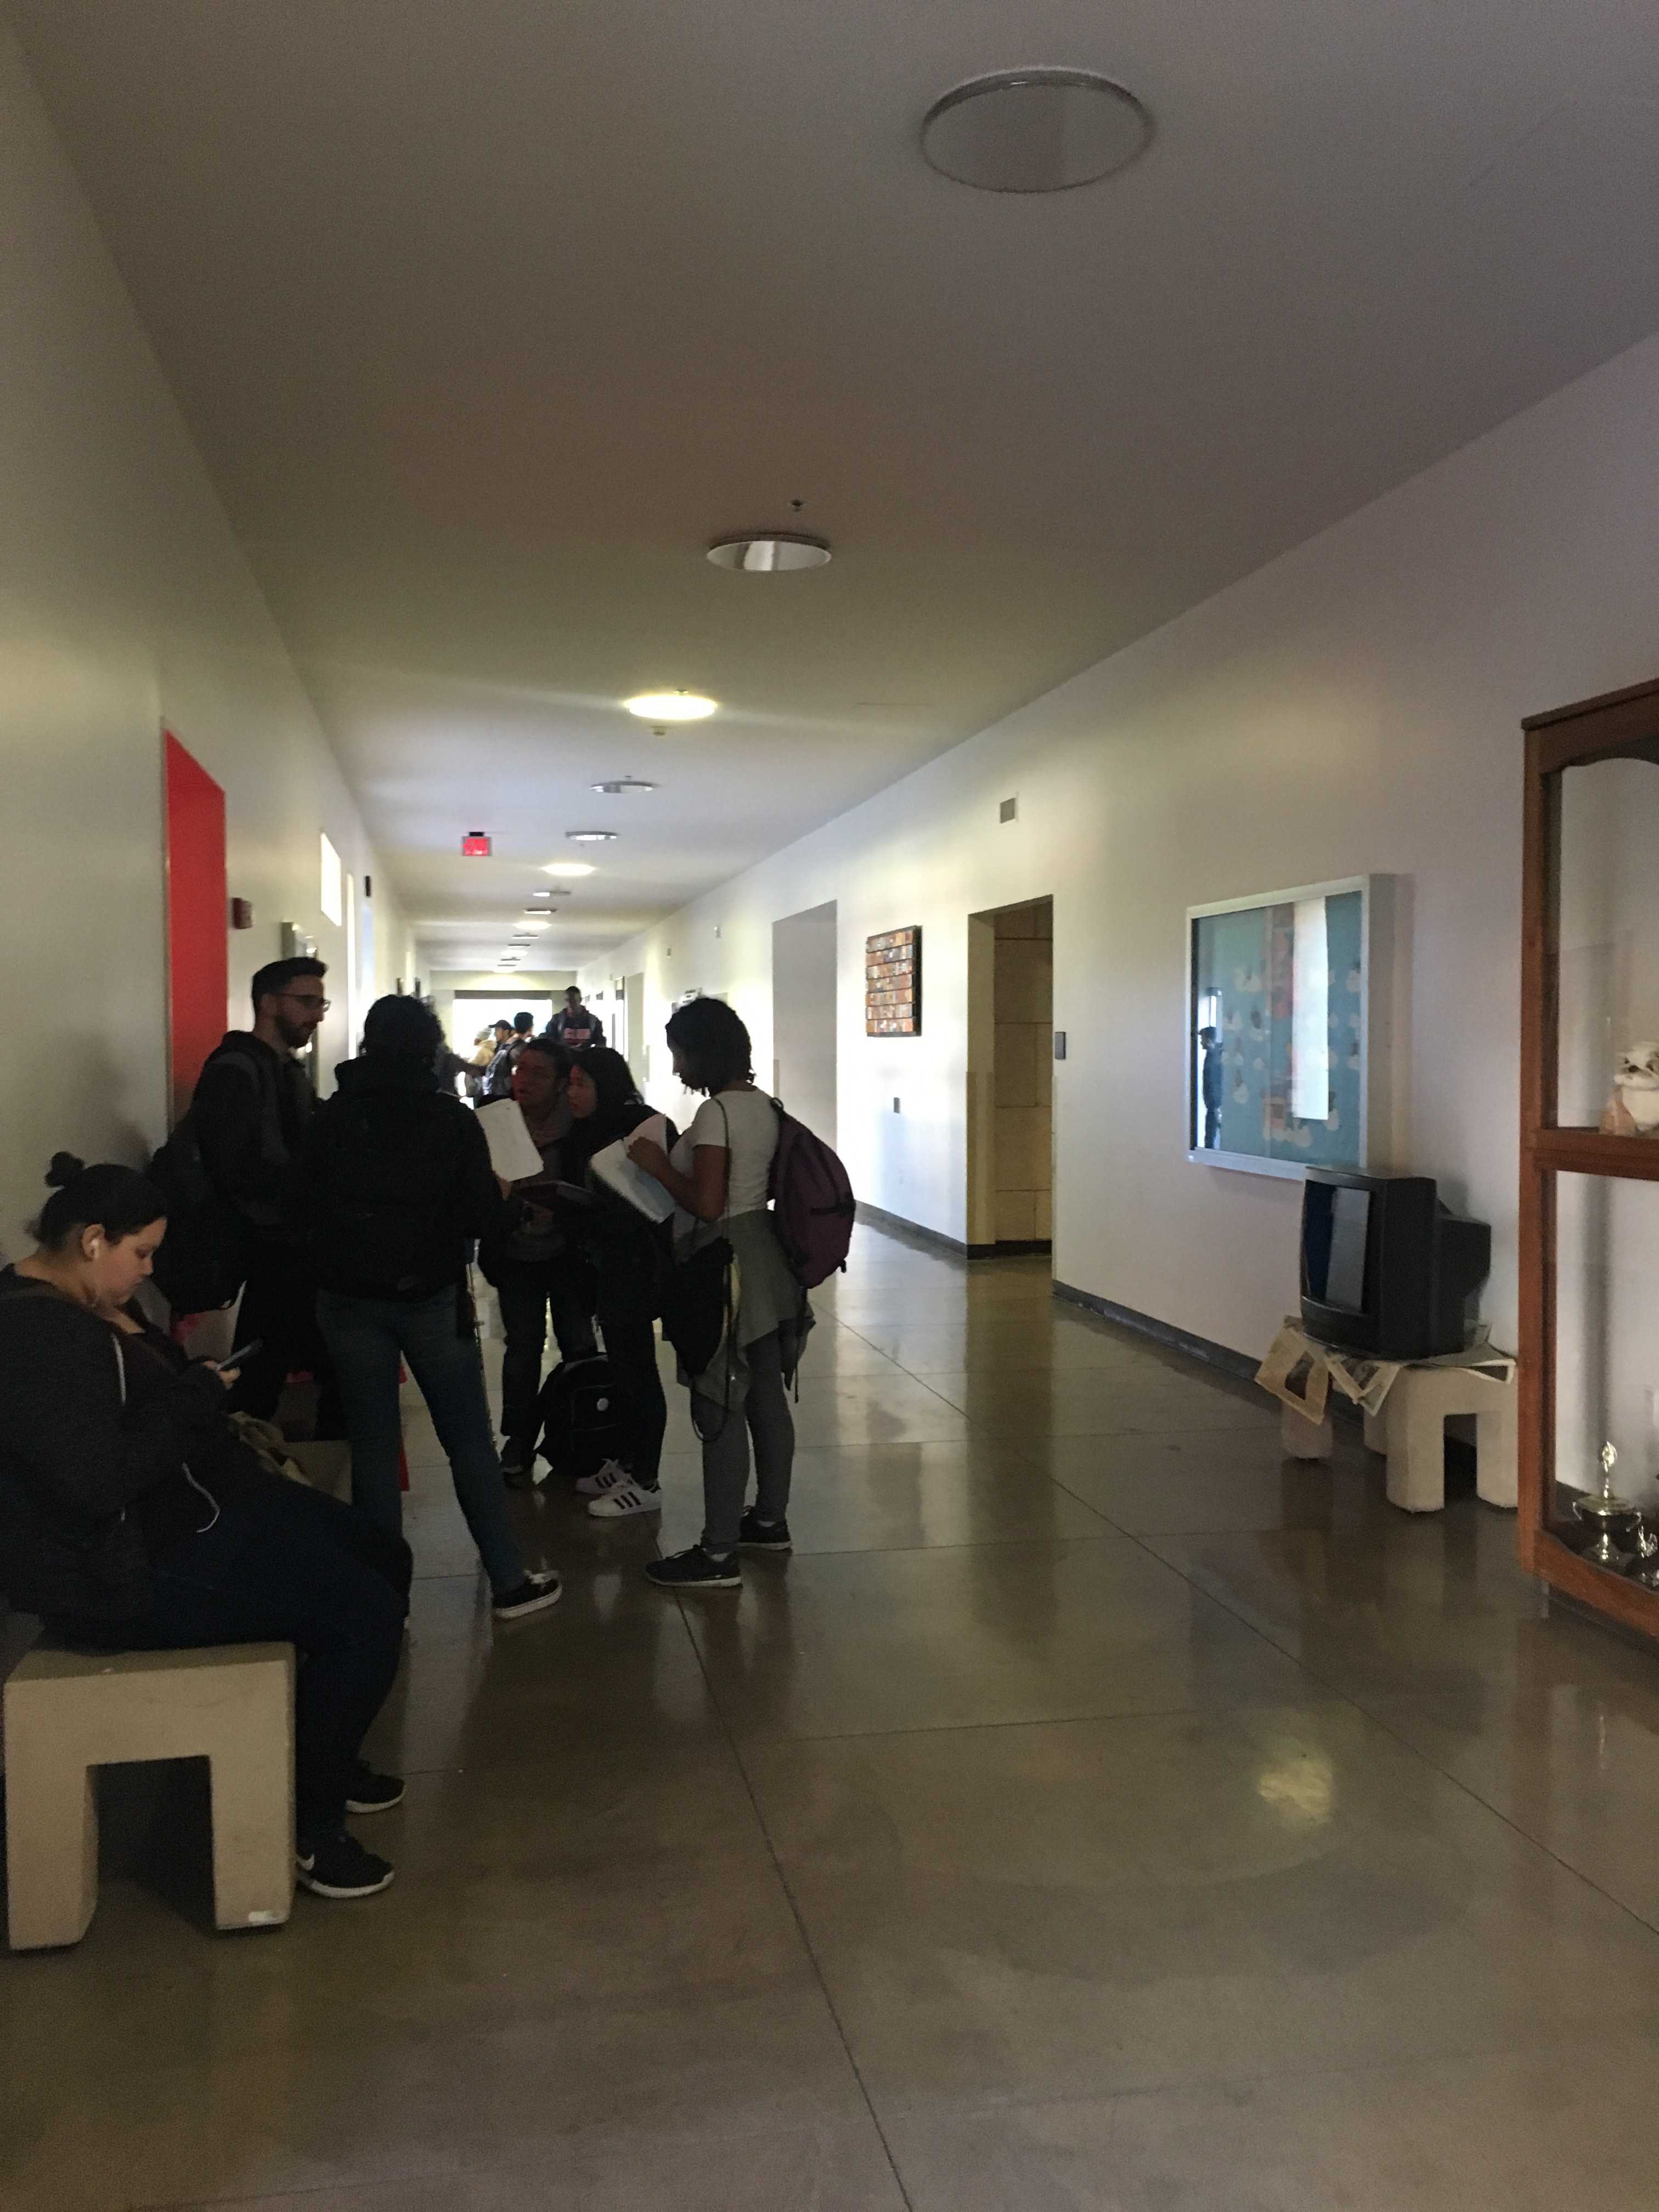 Hallway of Manzanita Hall outside of classroom 130. Students of Physics 220B-Electricity and Magnetism-  wait to hear if their test will be cancelled.